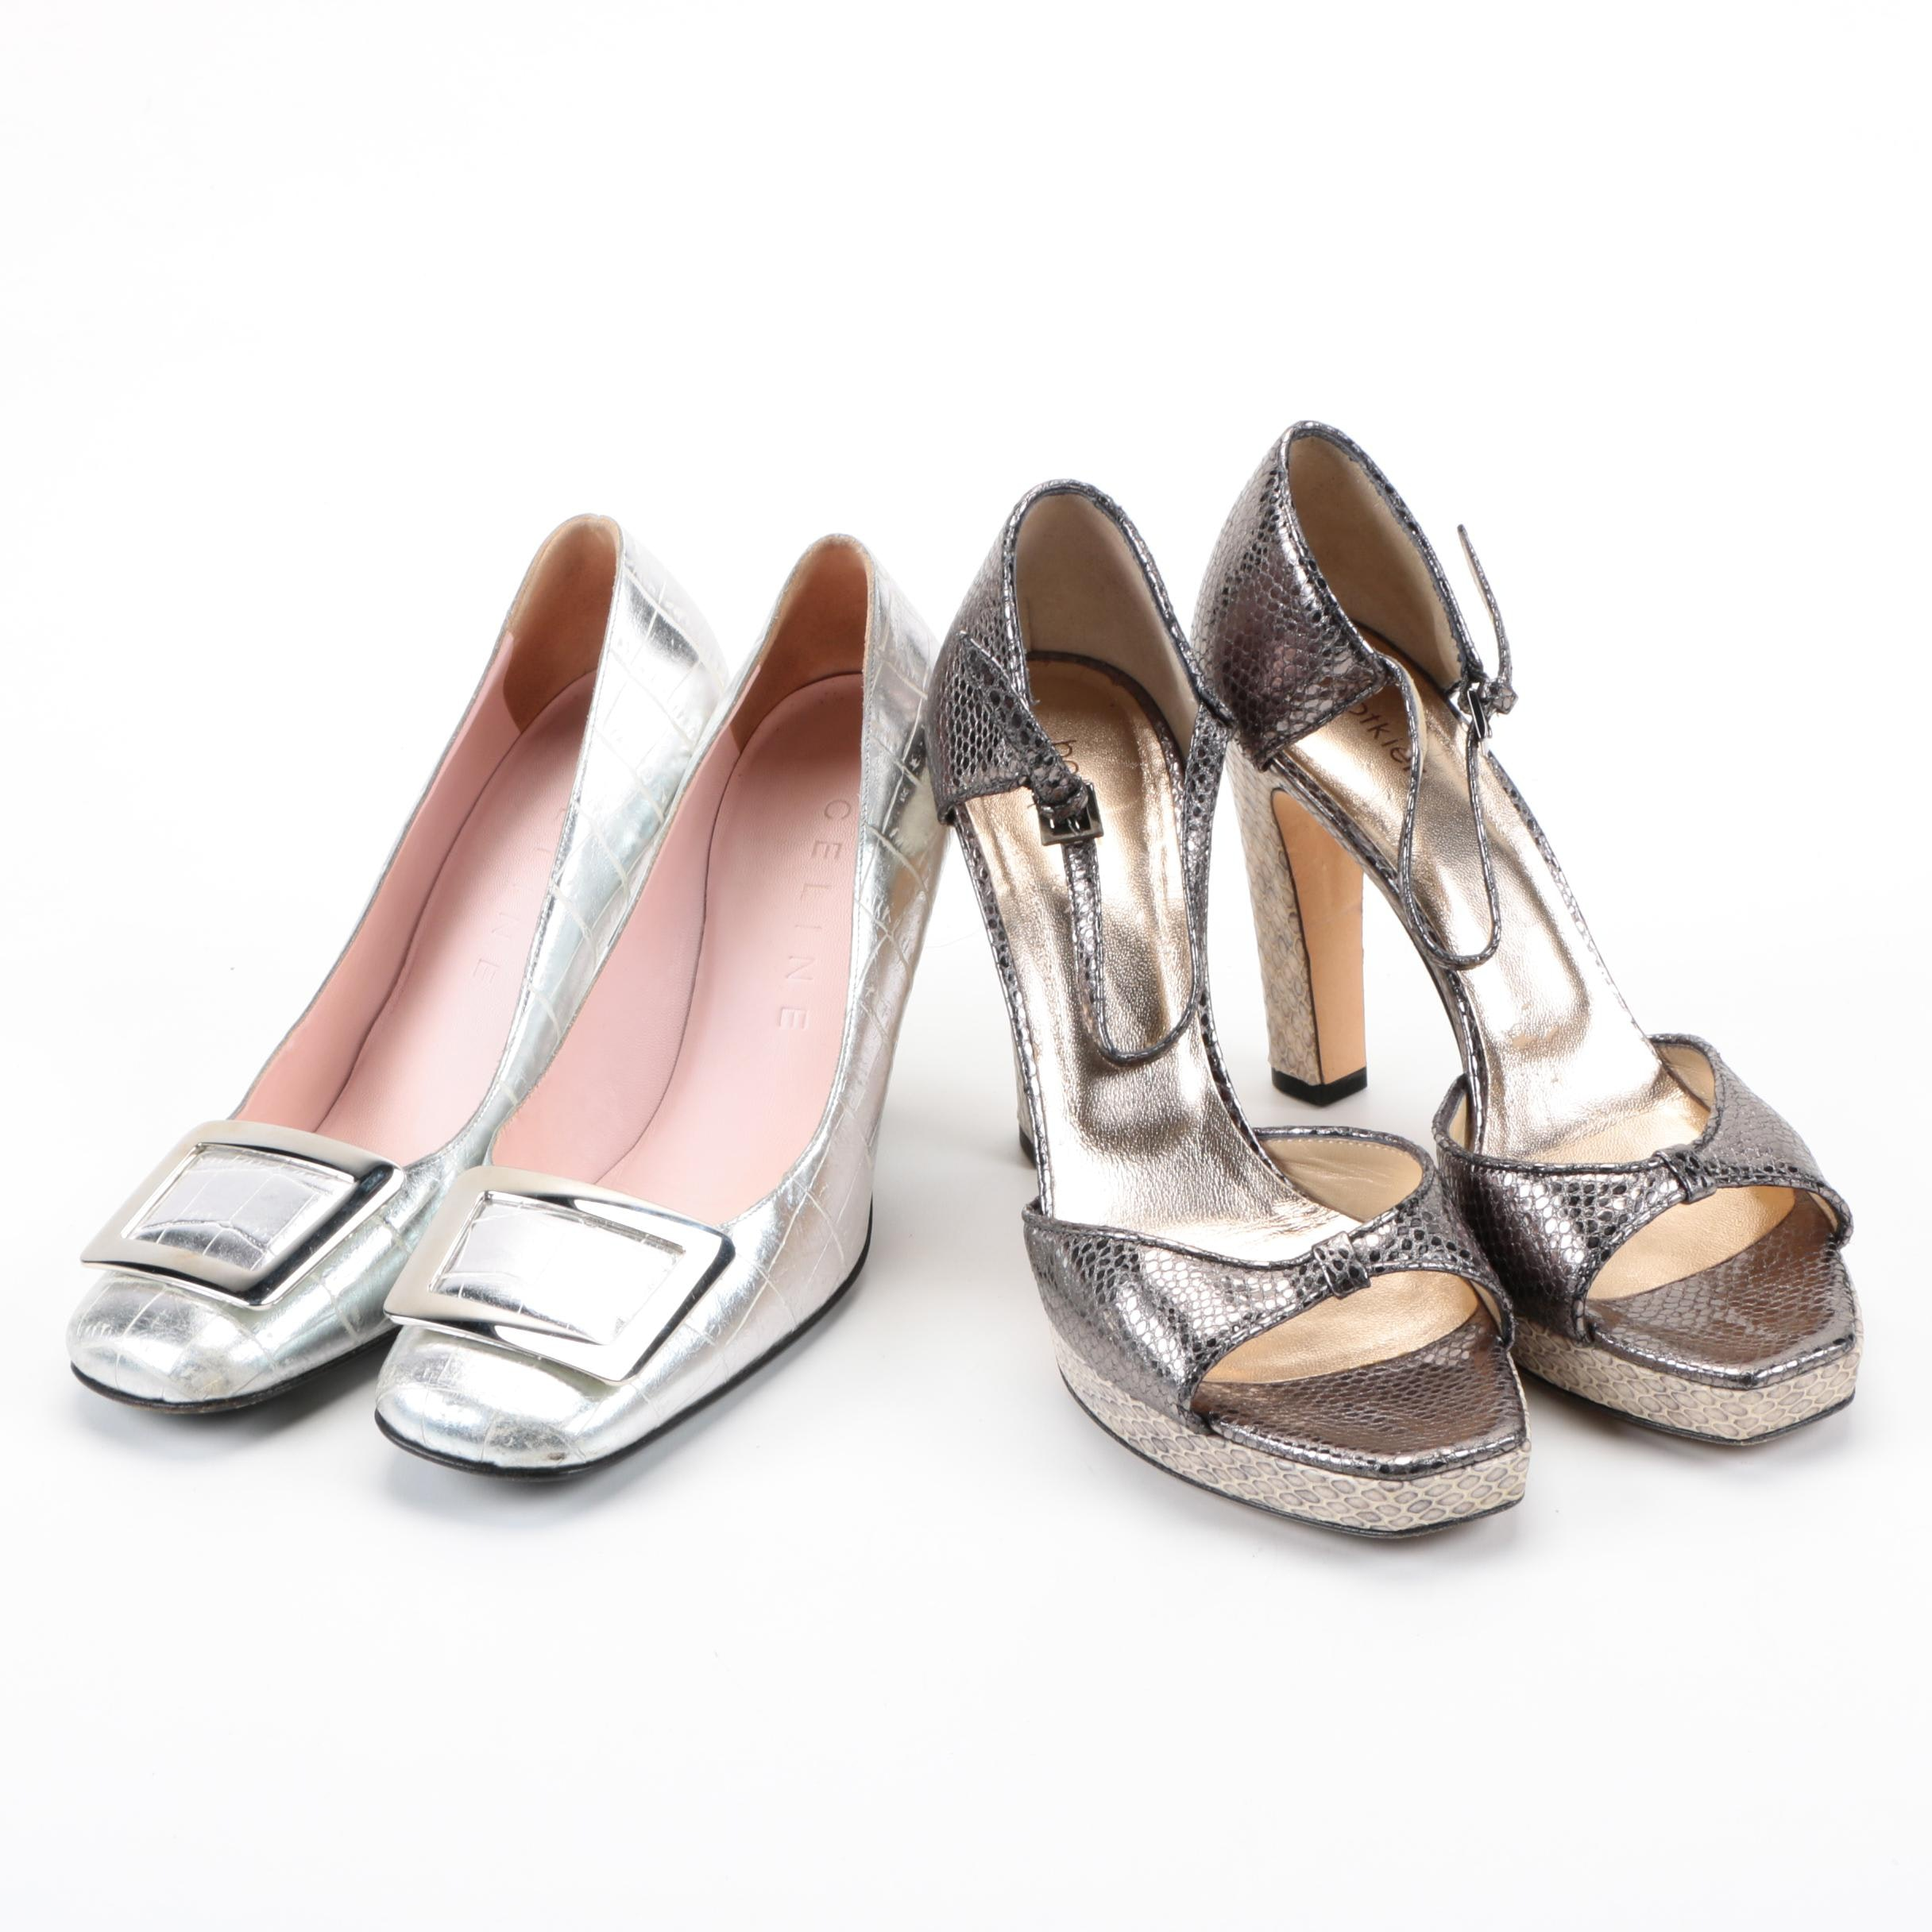 Women's Metallic Leather Shoes Including Celine